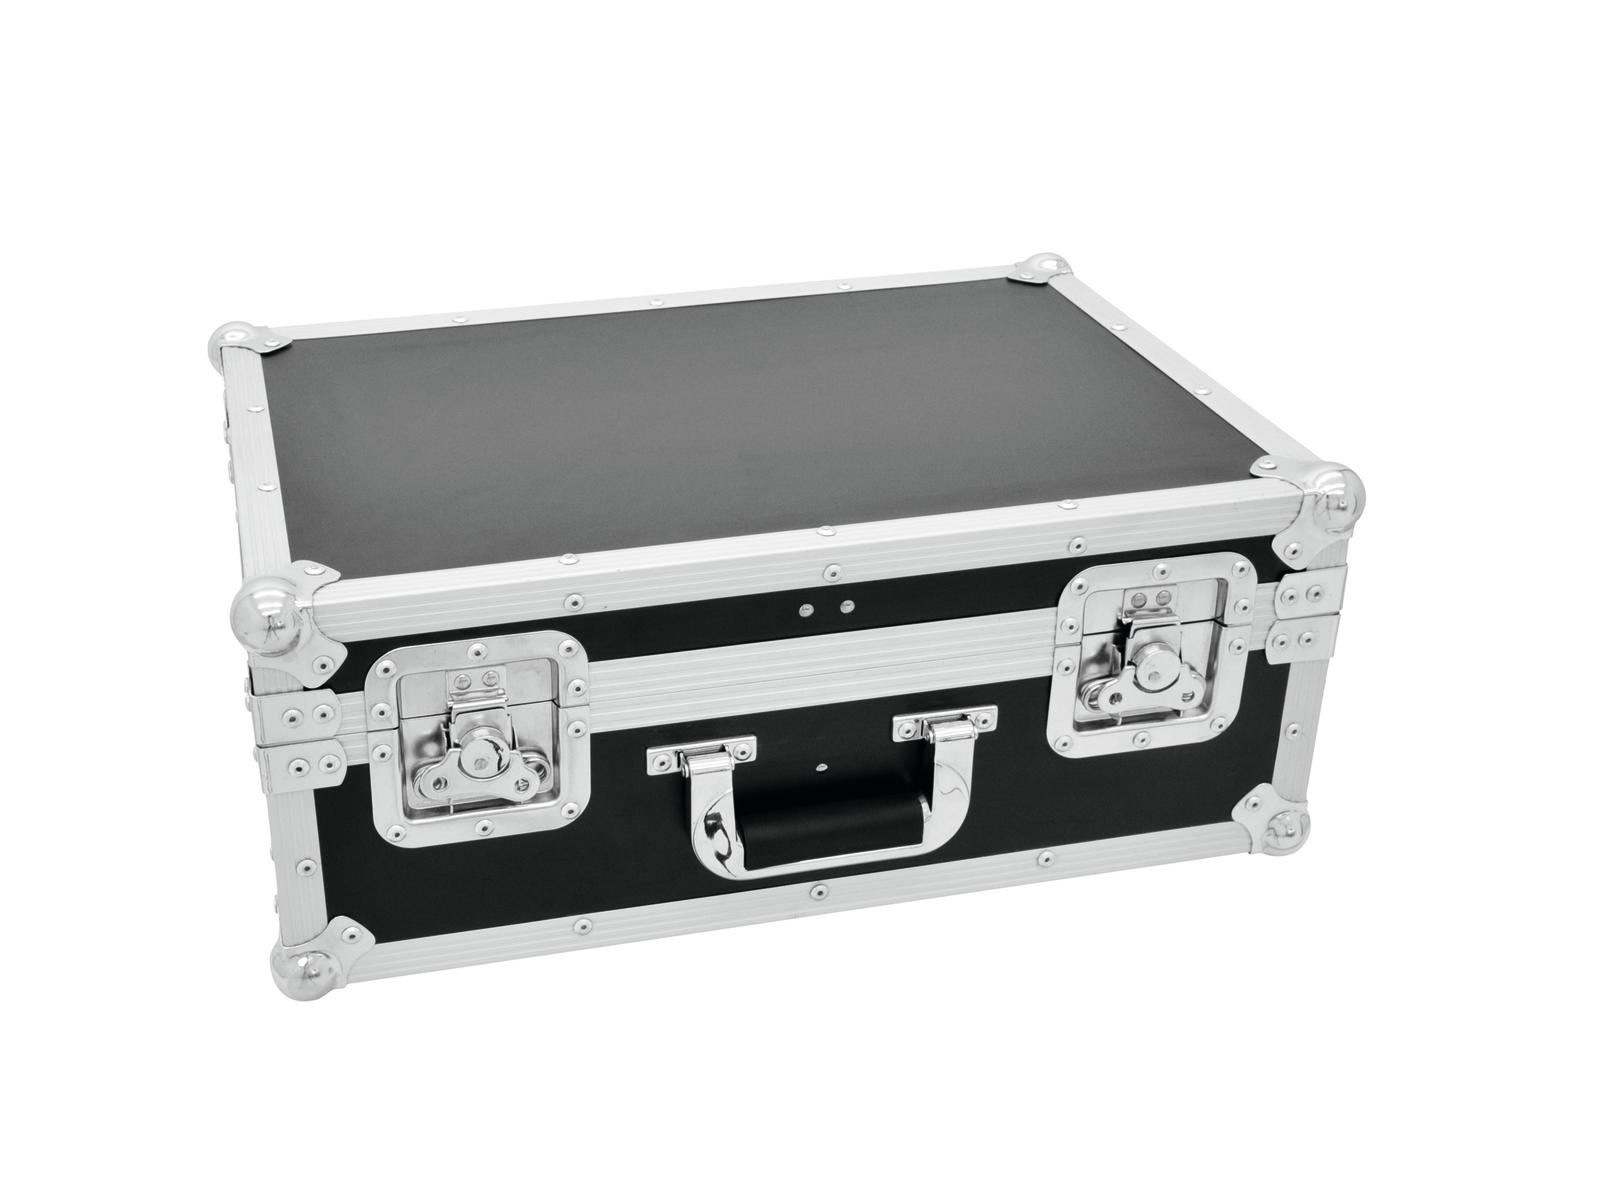 Flight Case Universale Trolley ROADINGER 550 x 380 x 260 mm